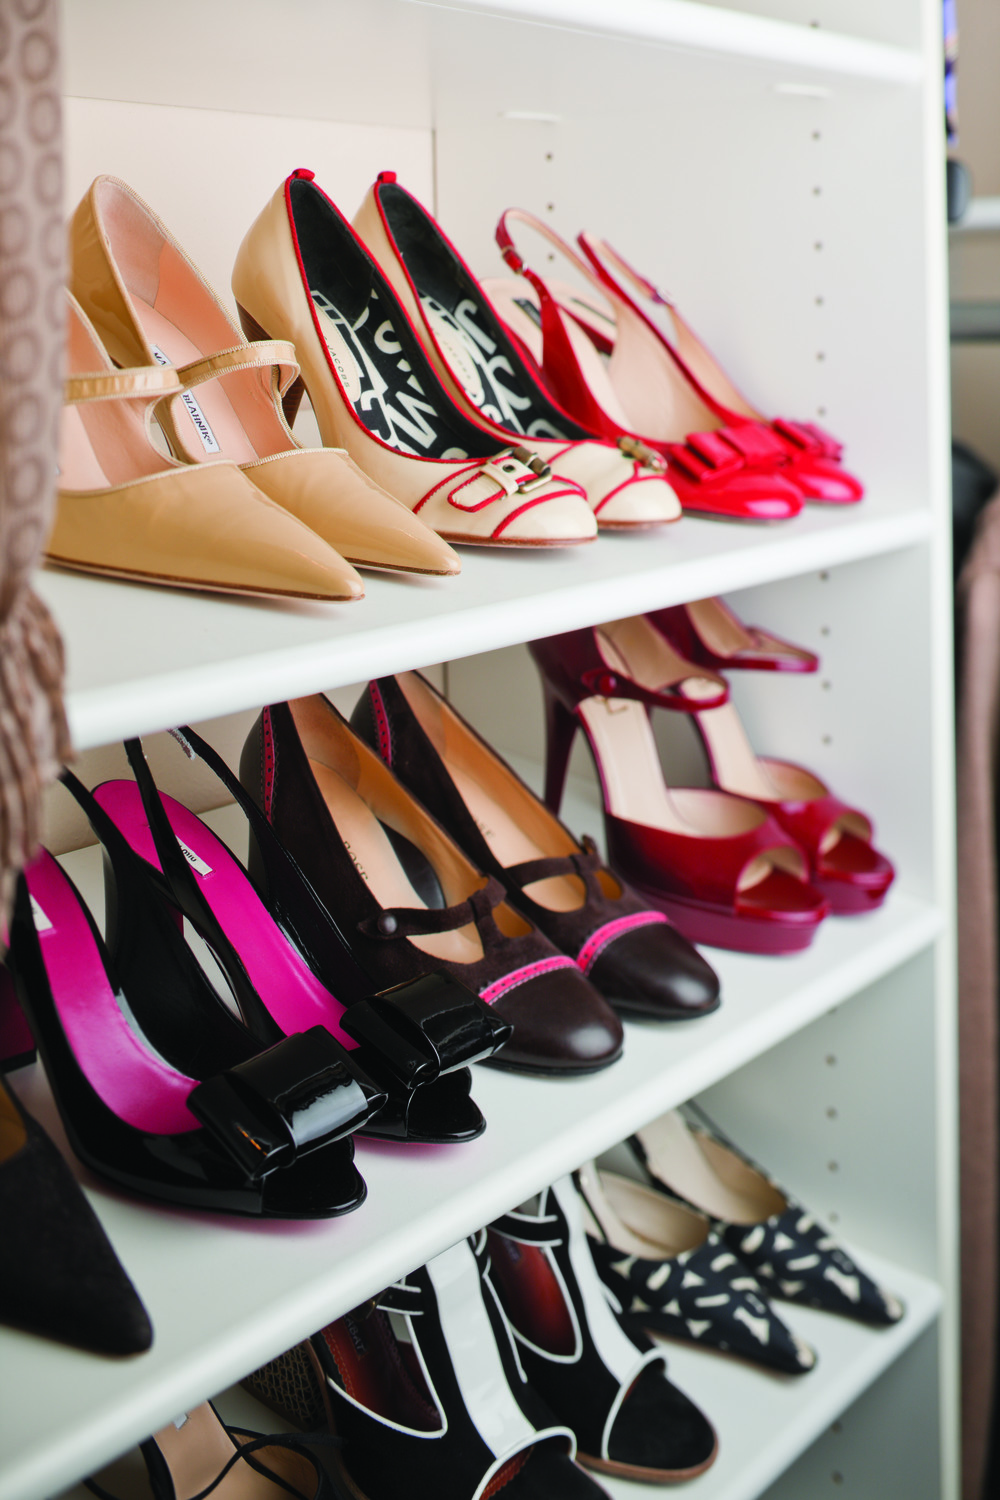 Adjustable Shoe Shelving